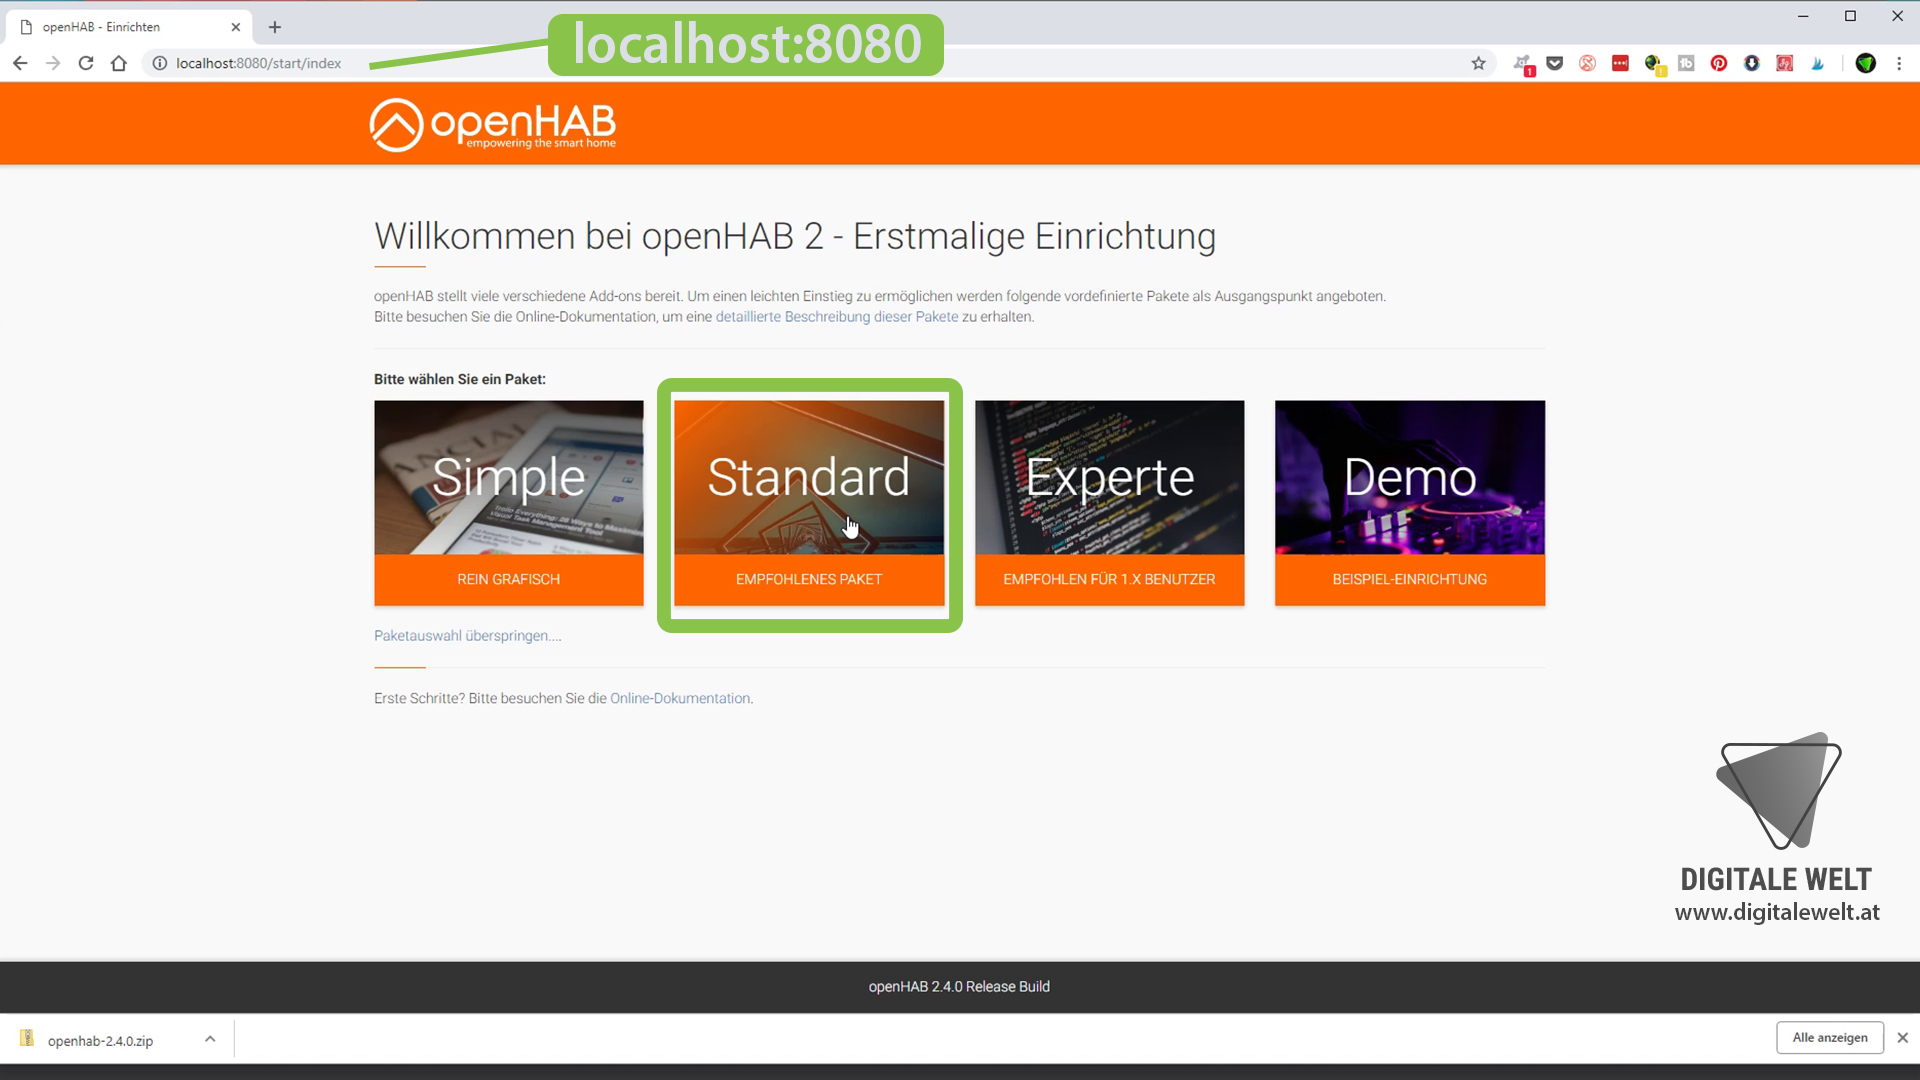 openHAB 2 Windows - openHAB 2 Browser (DigitaleWelt)